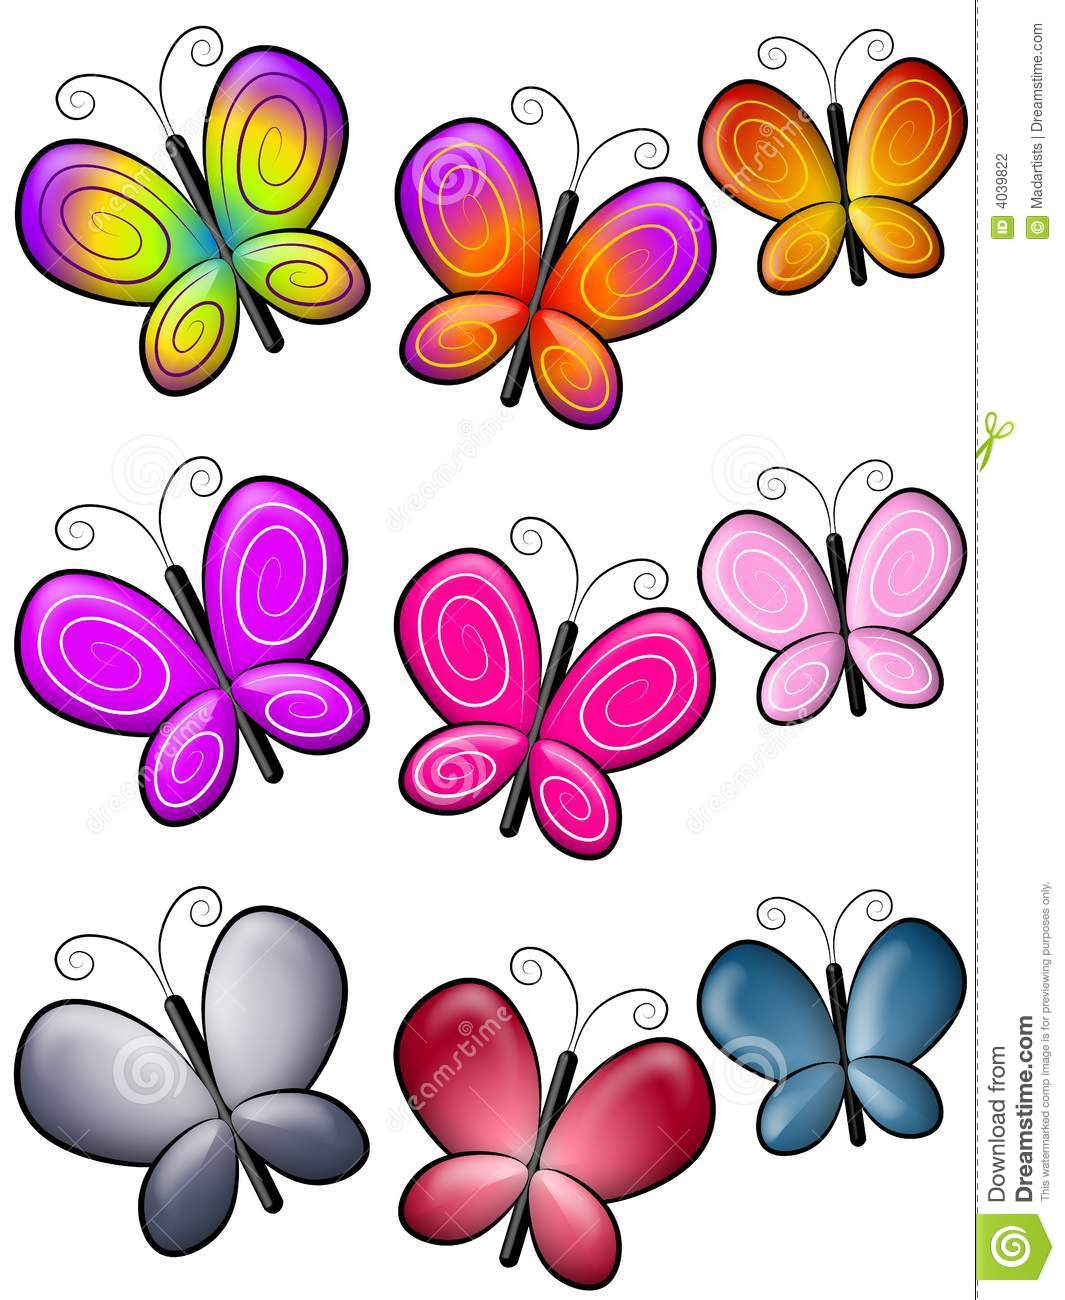 various colourful butterflies clip art stock illustration rh dreamstime com clipart of butterflies black and white clipart of butterfly with eyes